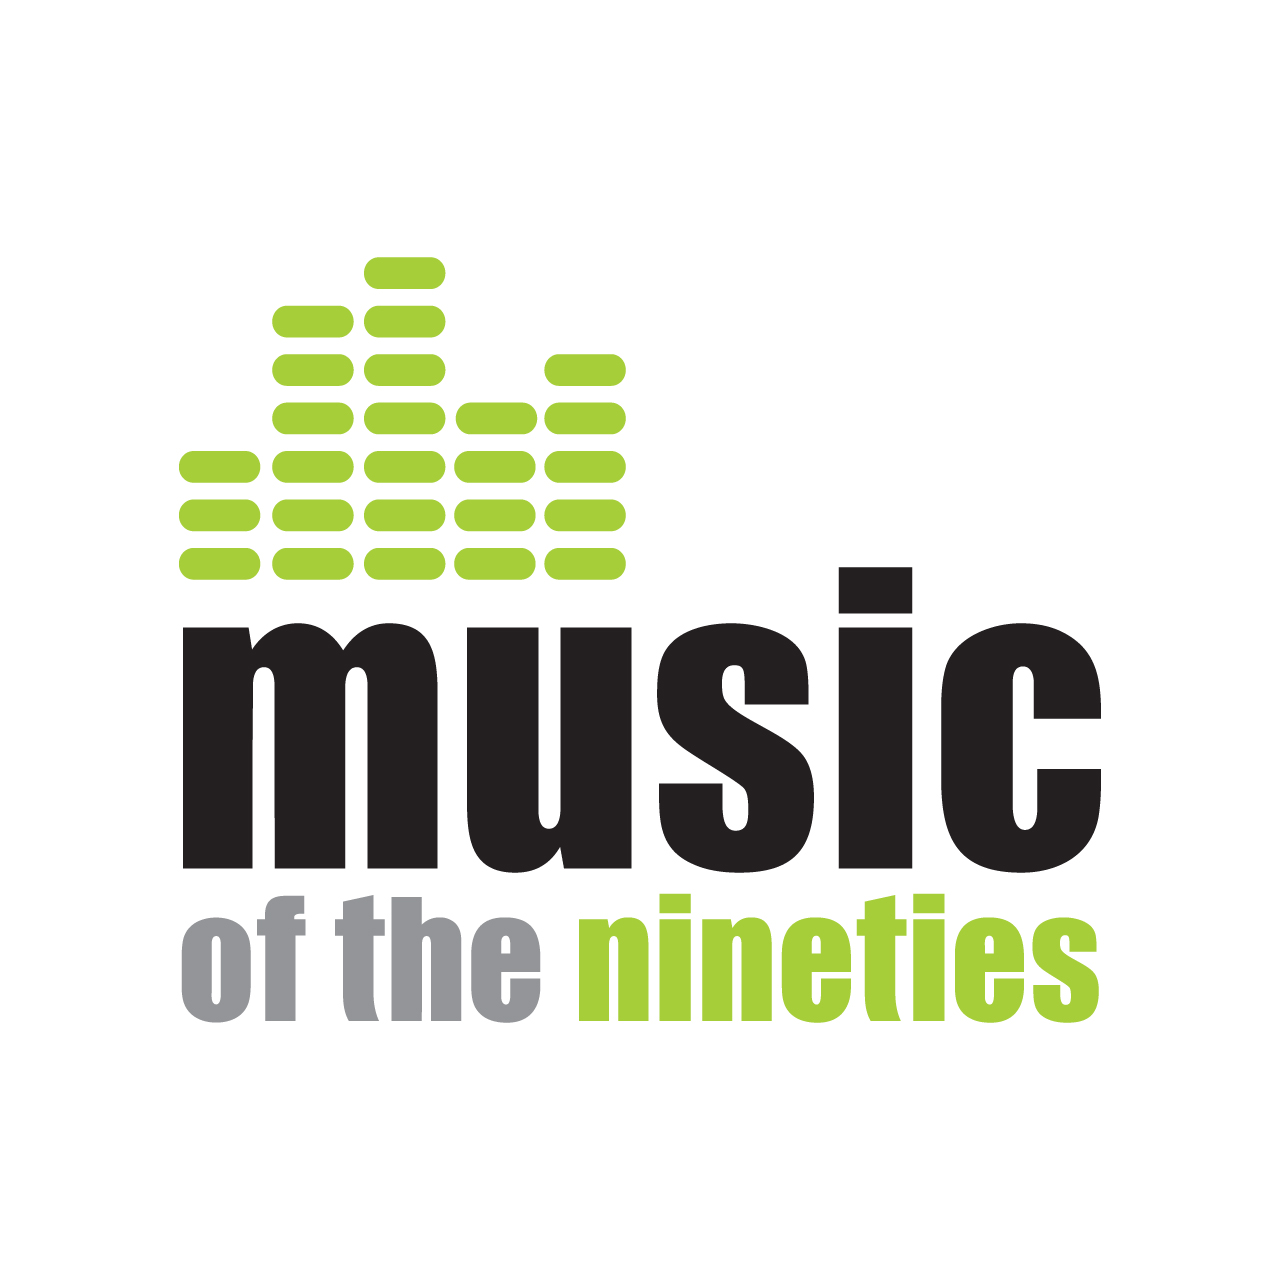 Logo Design by marikisoti - Entry No. 39 in the Logo Design Contest Music of the Nineties Logo.